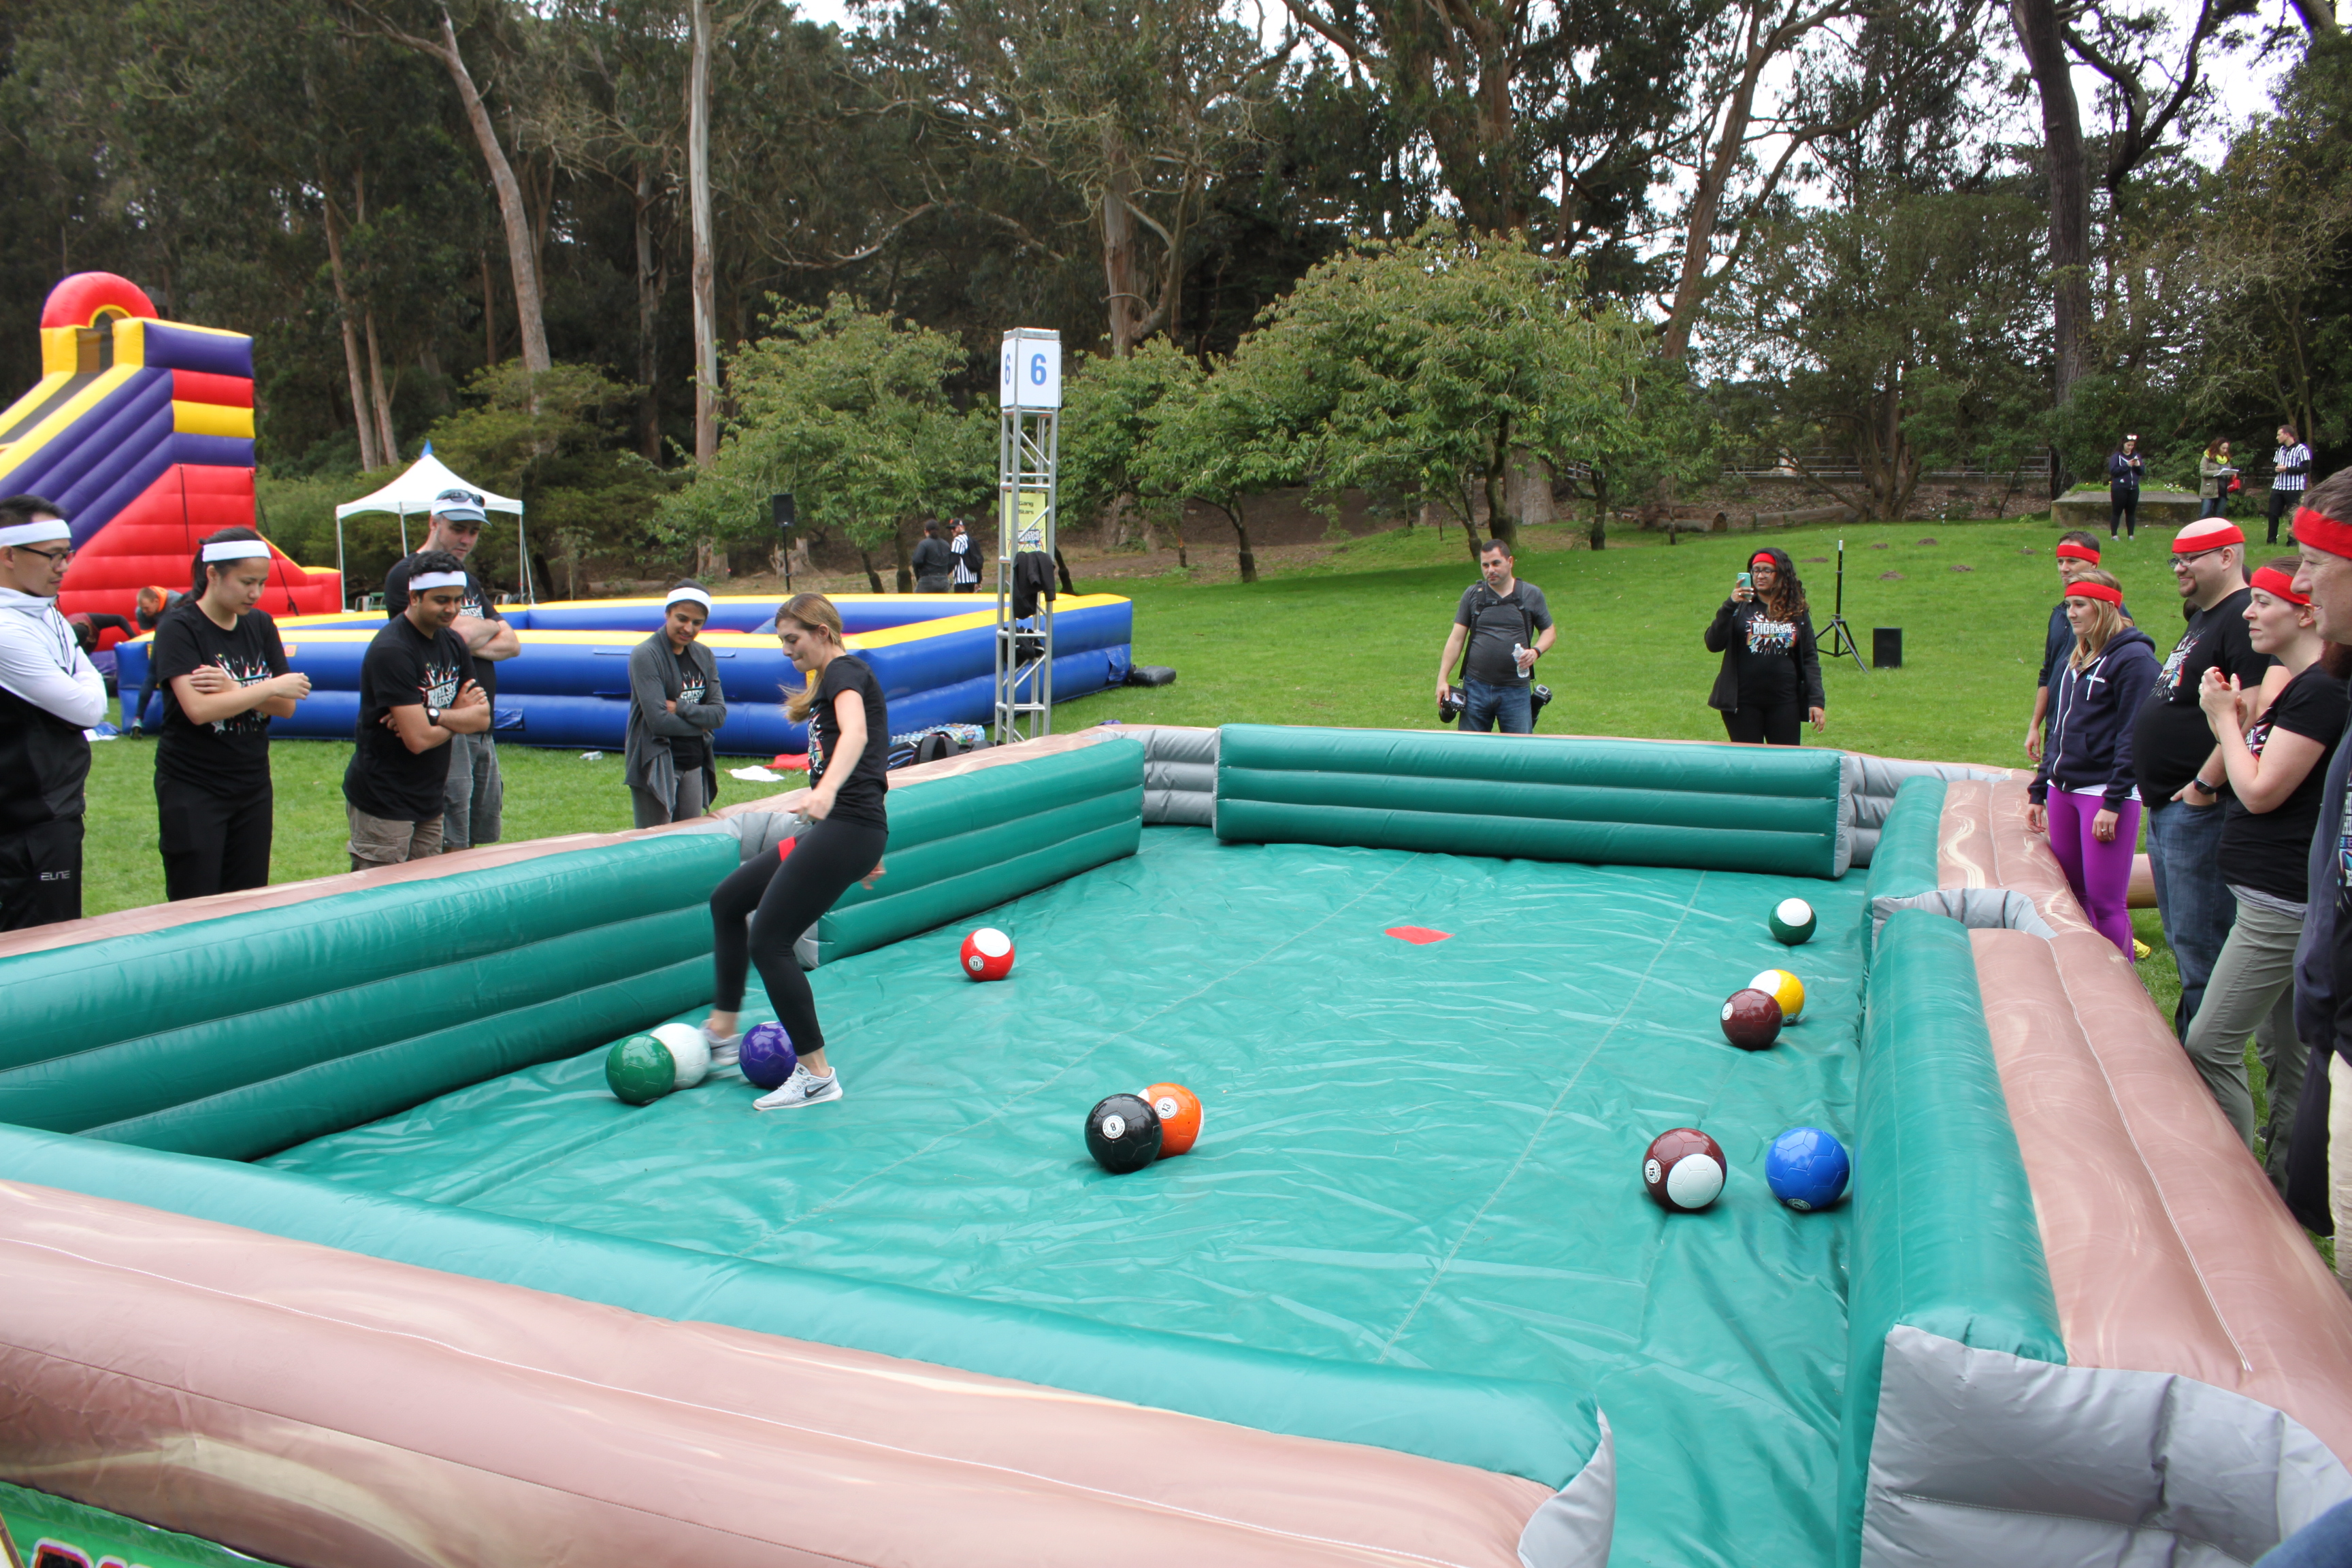 Giant Inflatable Pool Table